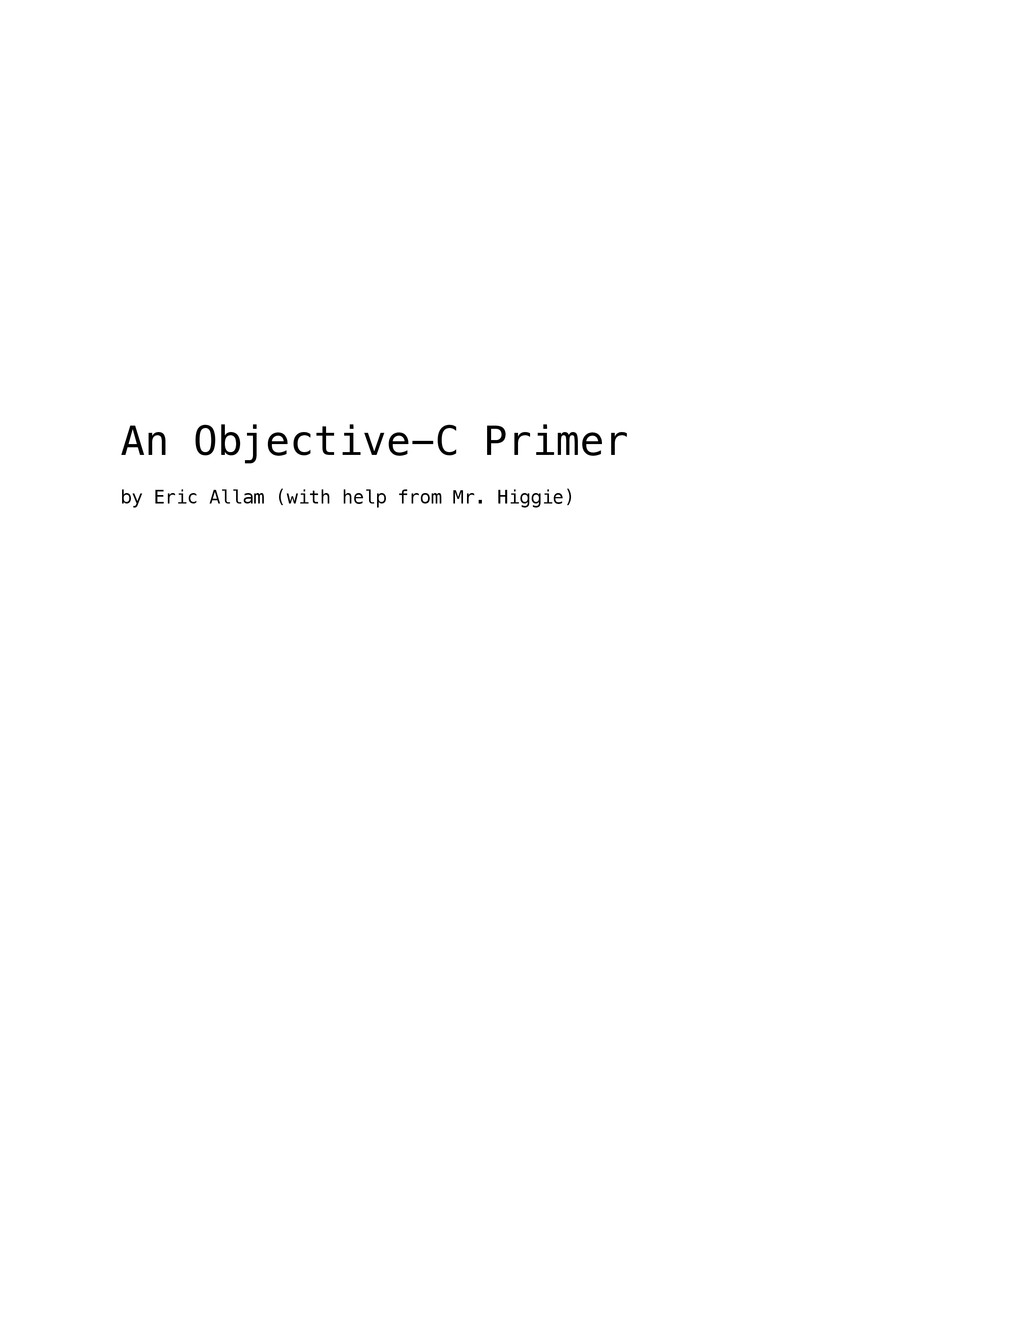 An Objective-C Primer by Eric Allam (with help ...